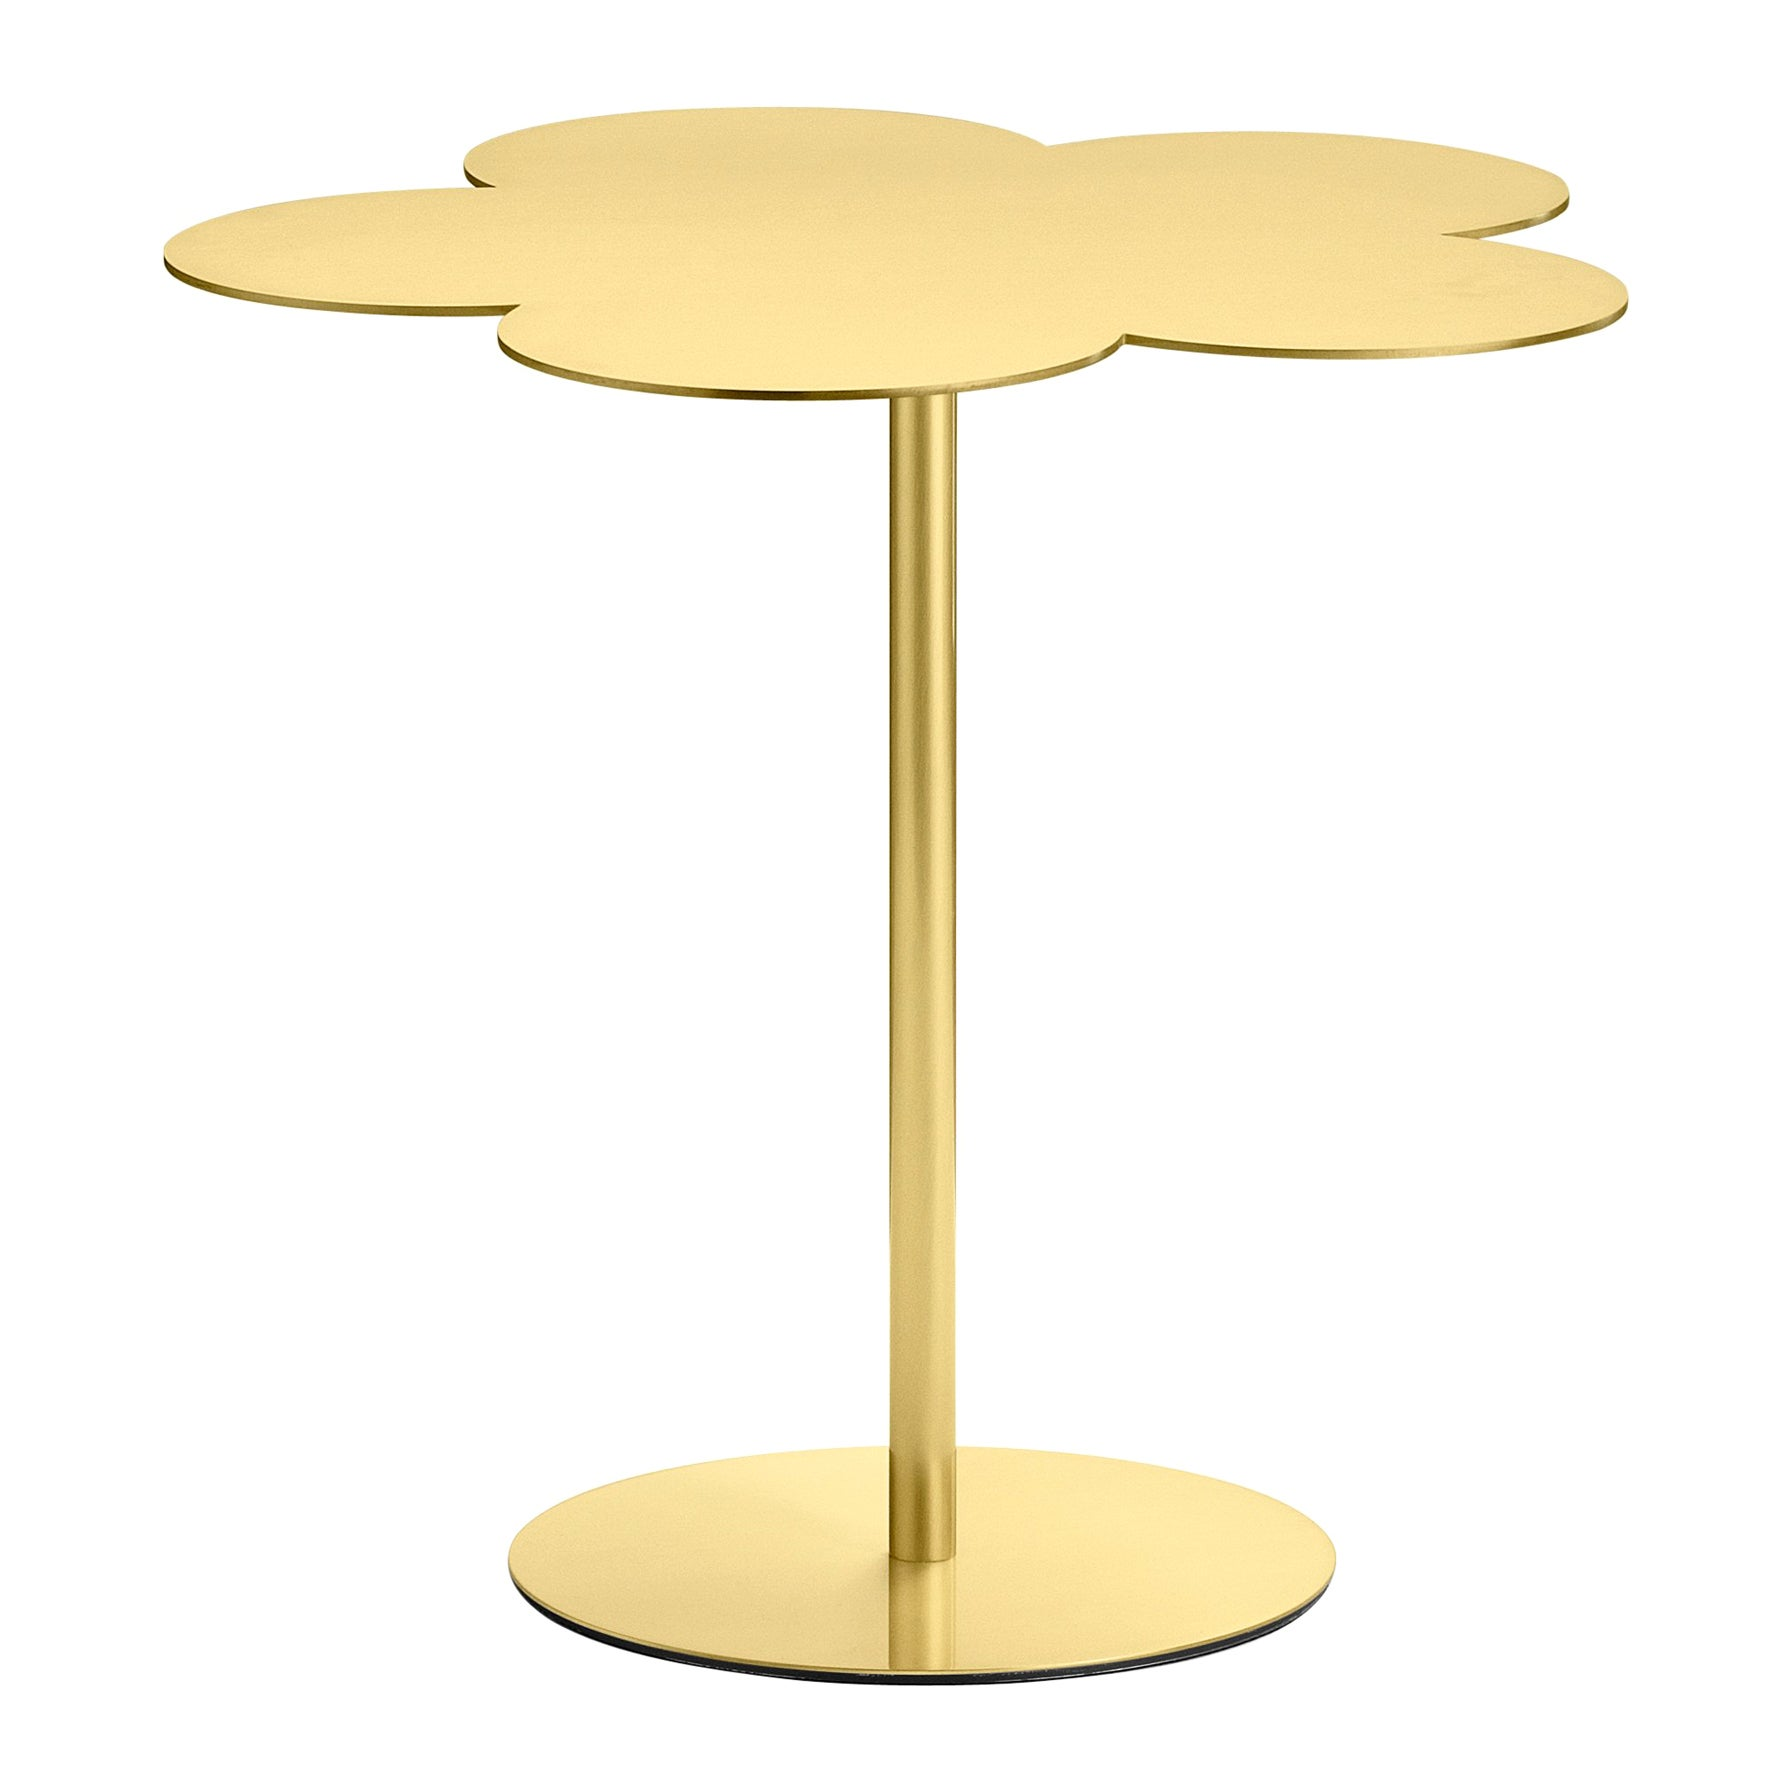 Ghidini 1961 Large Flowers Coffee Side Table in Brass by Stefano Giovannoni